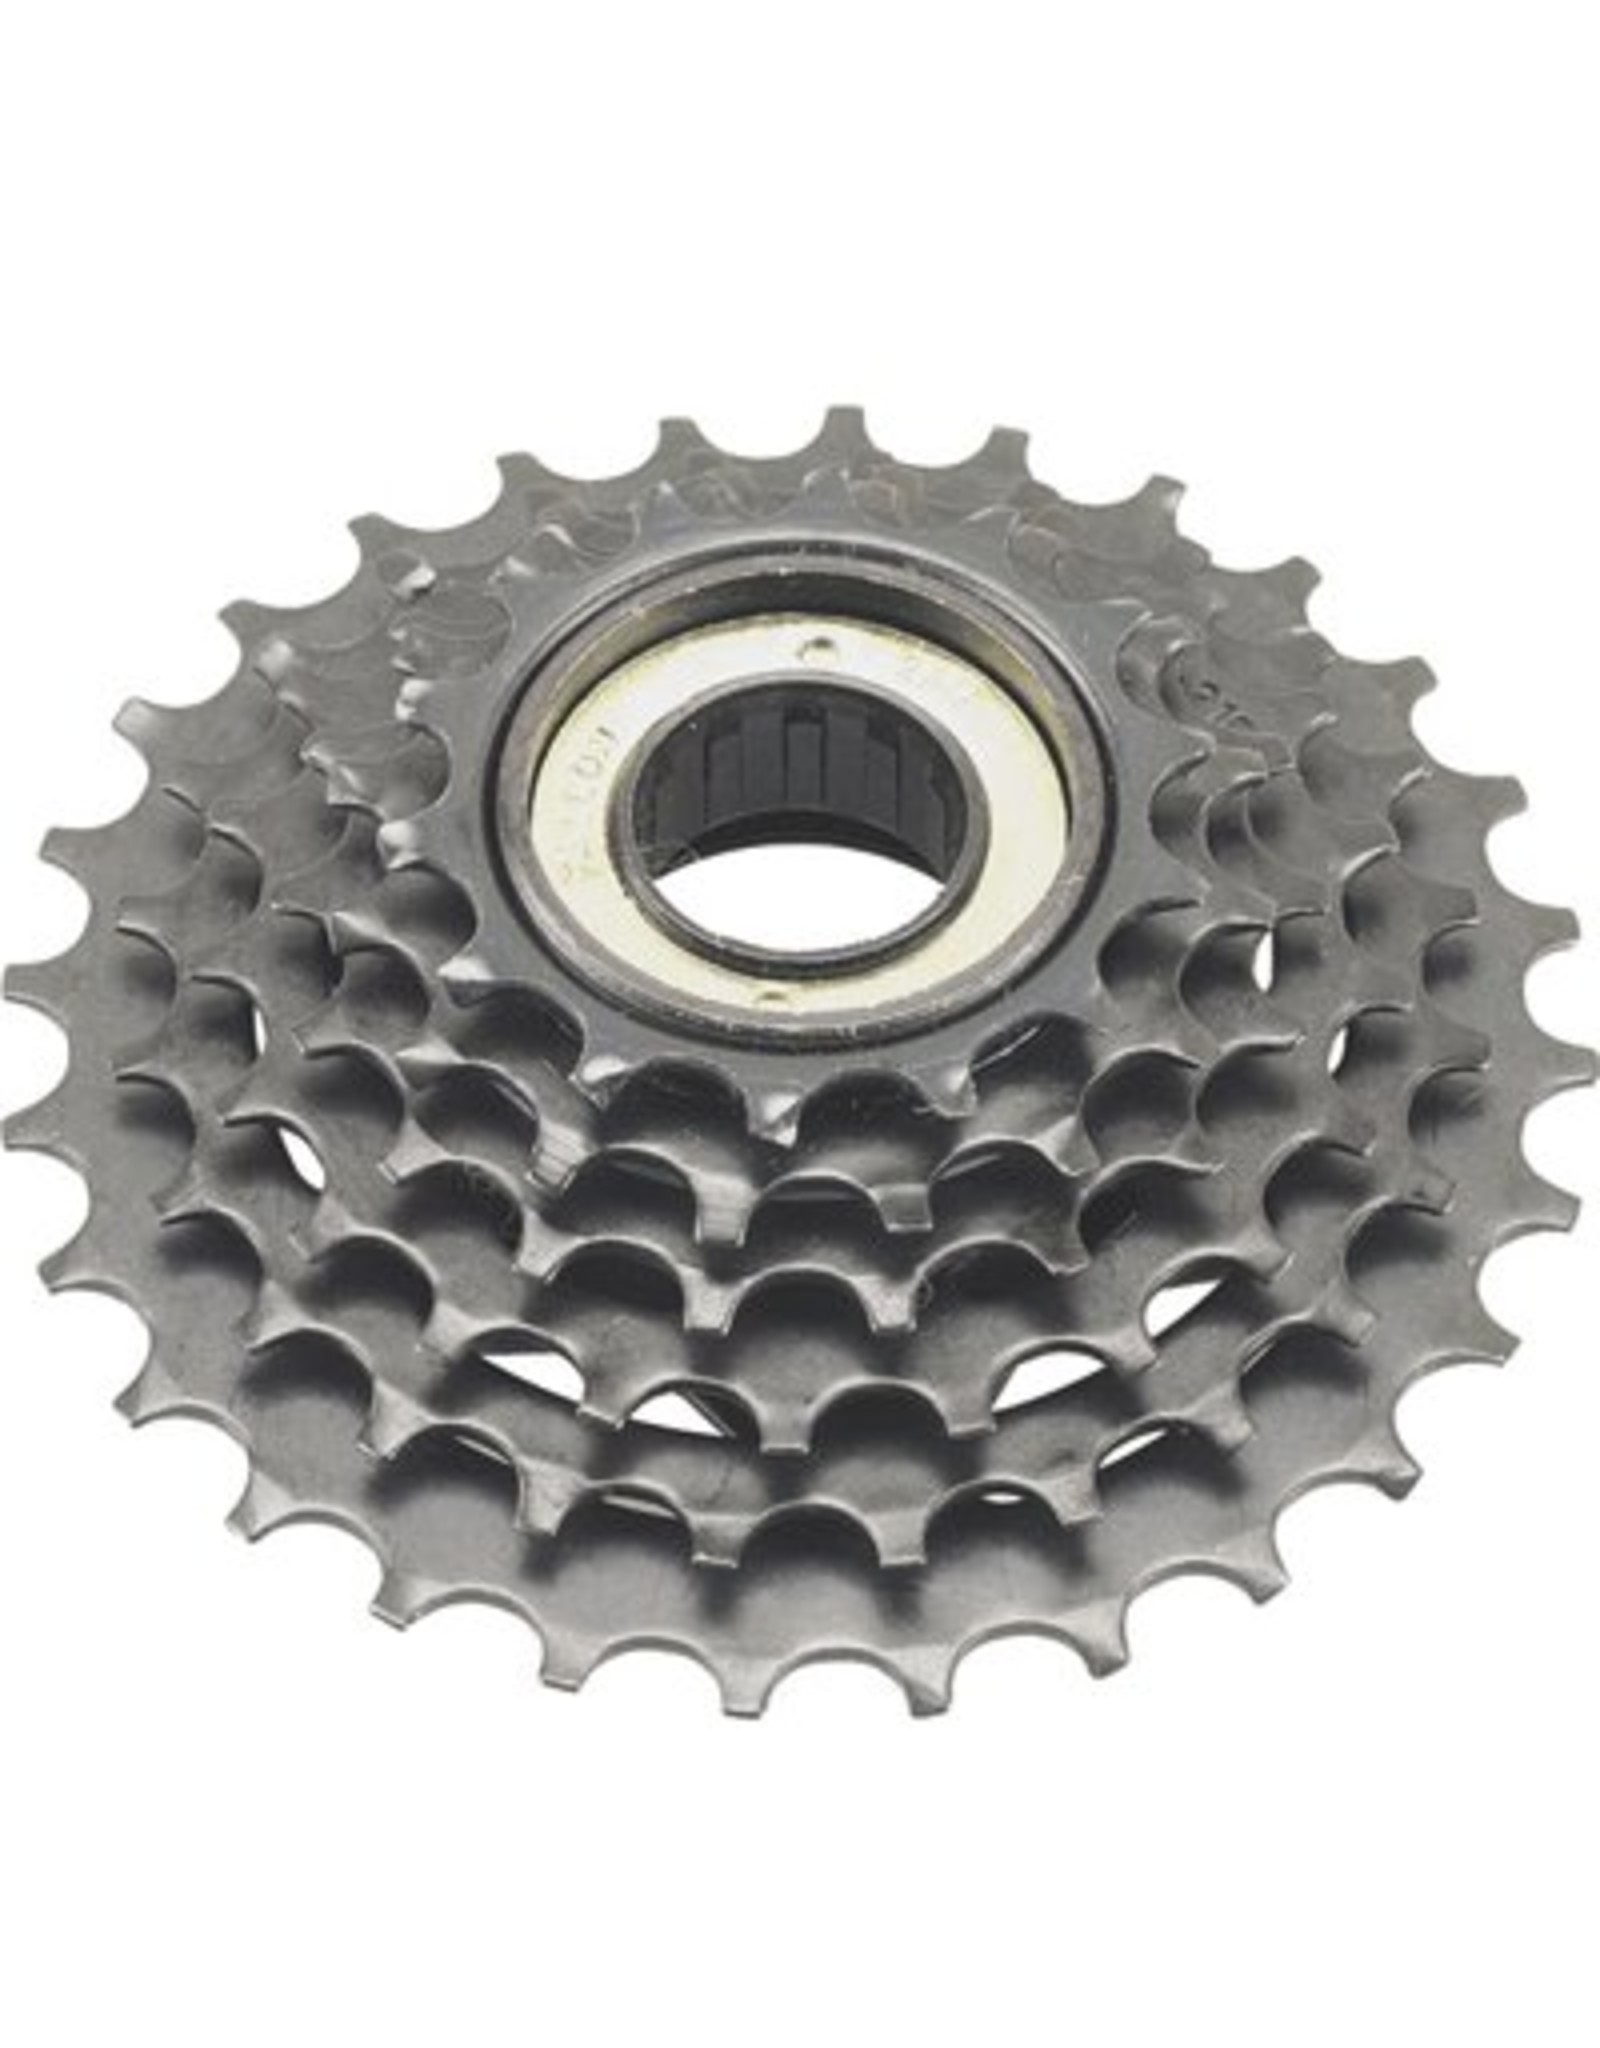 SunRace 5 Speed 14/28 Freewheel